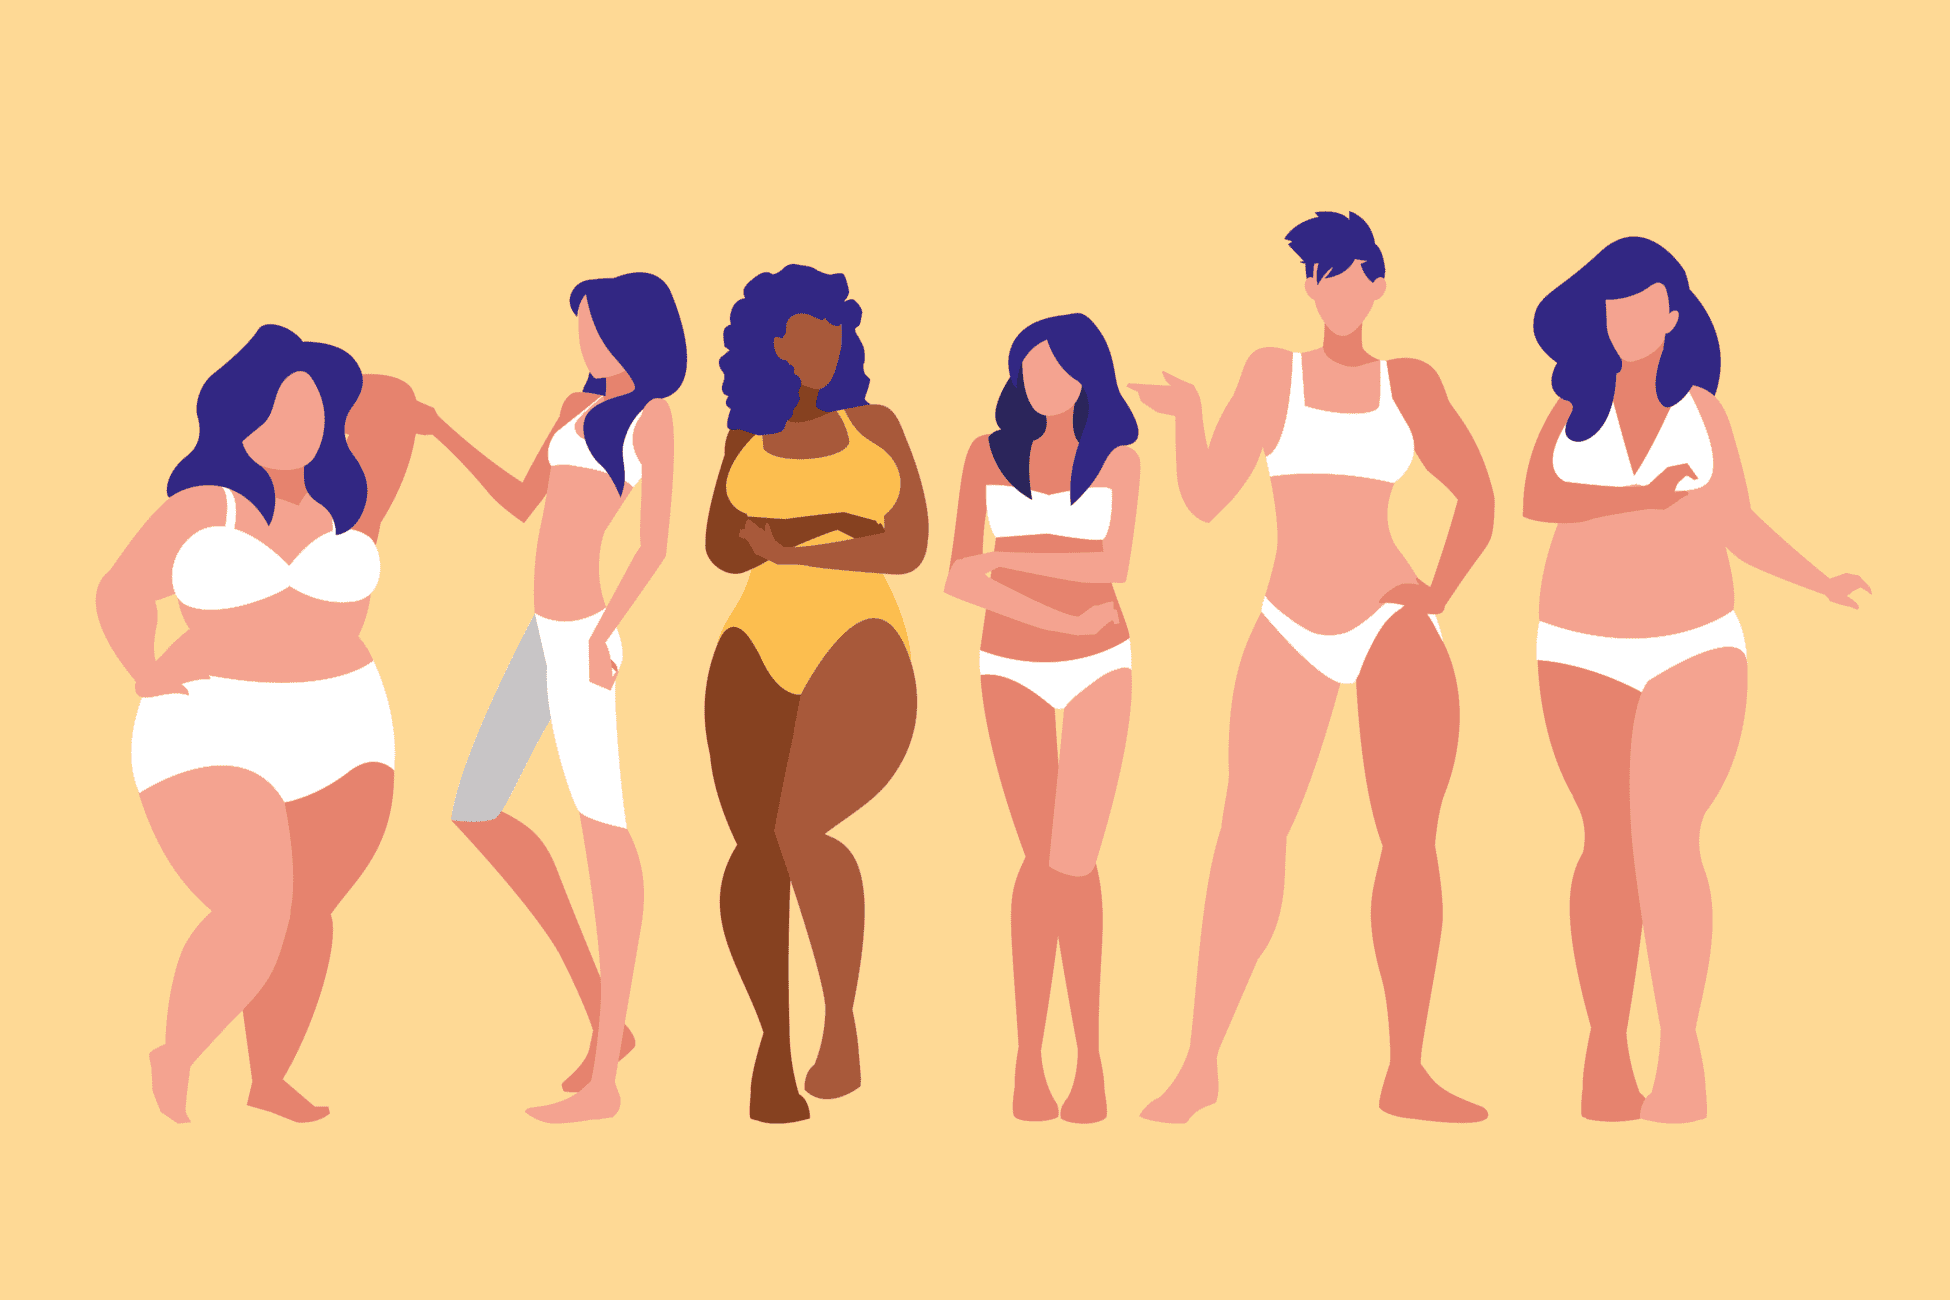 4 Tips For Choosing The Perfect Lingerie For Your Body Type – 2021 Guide